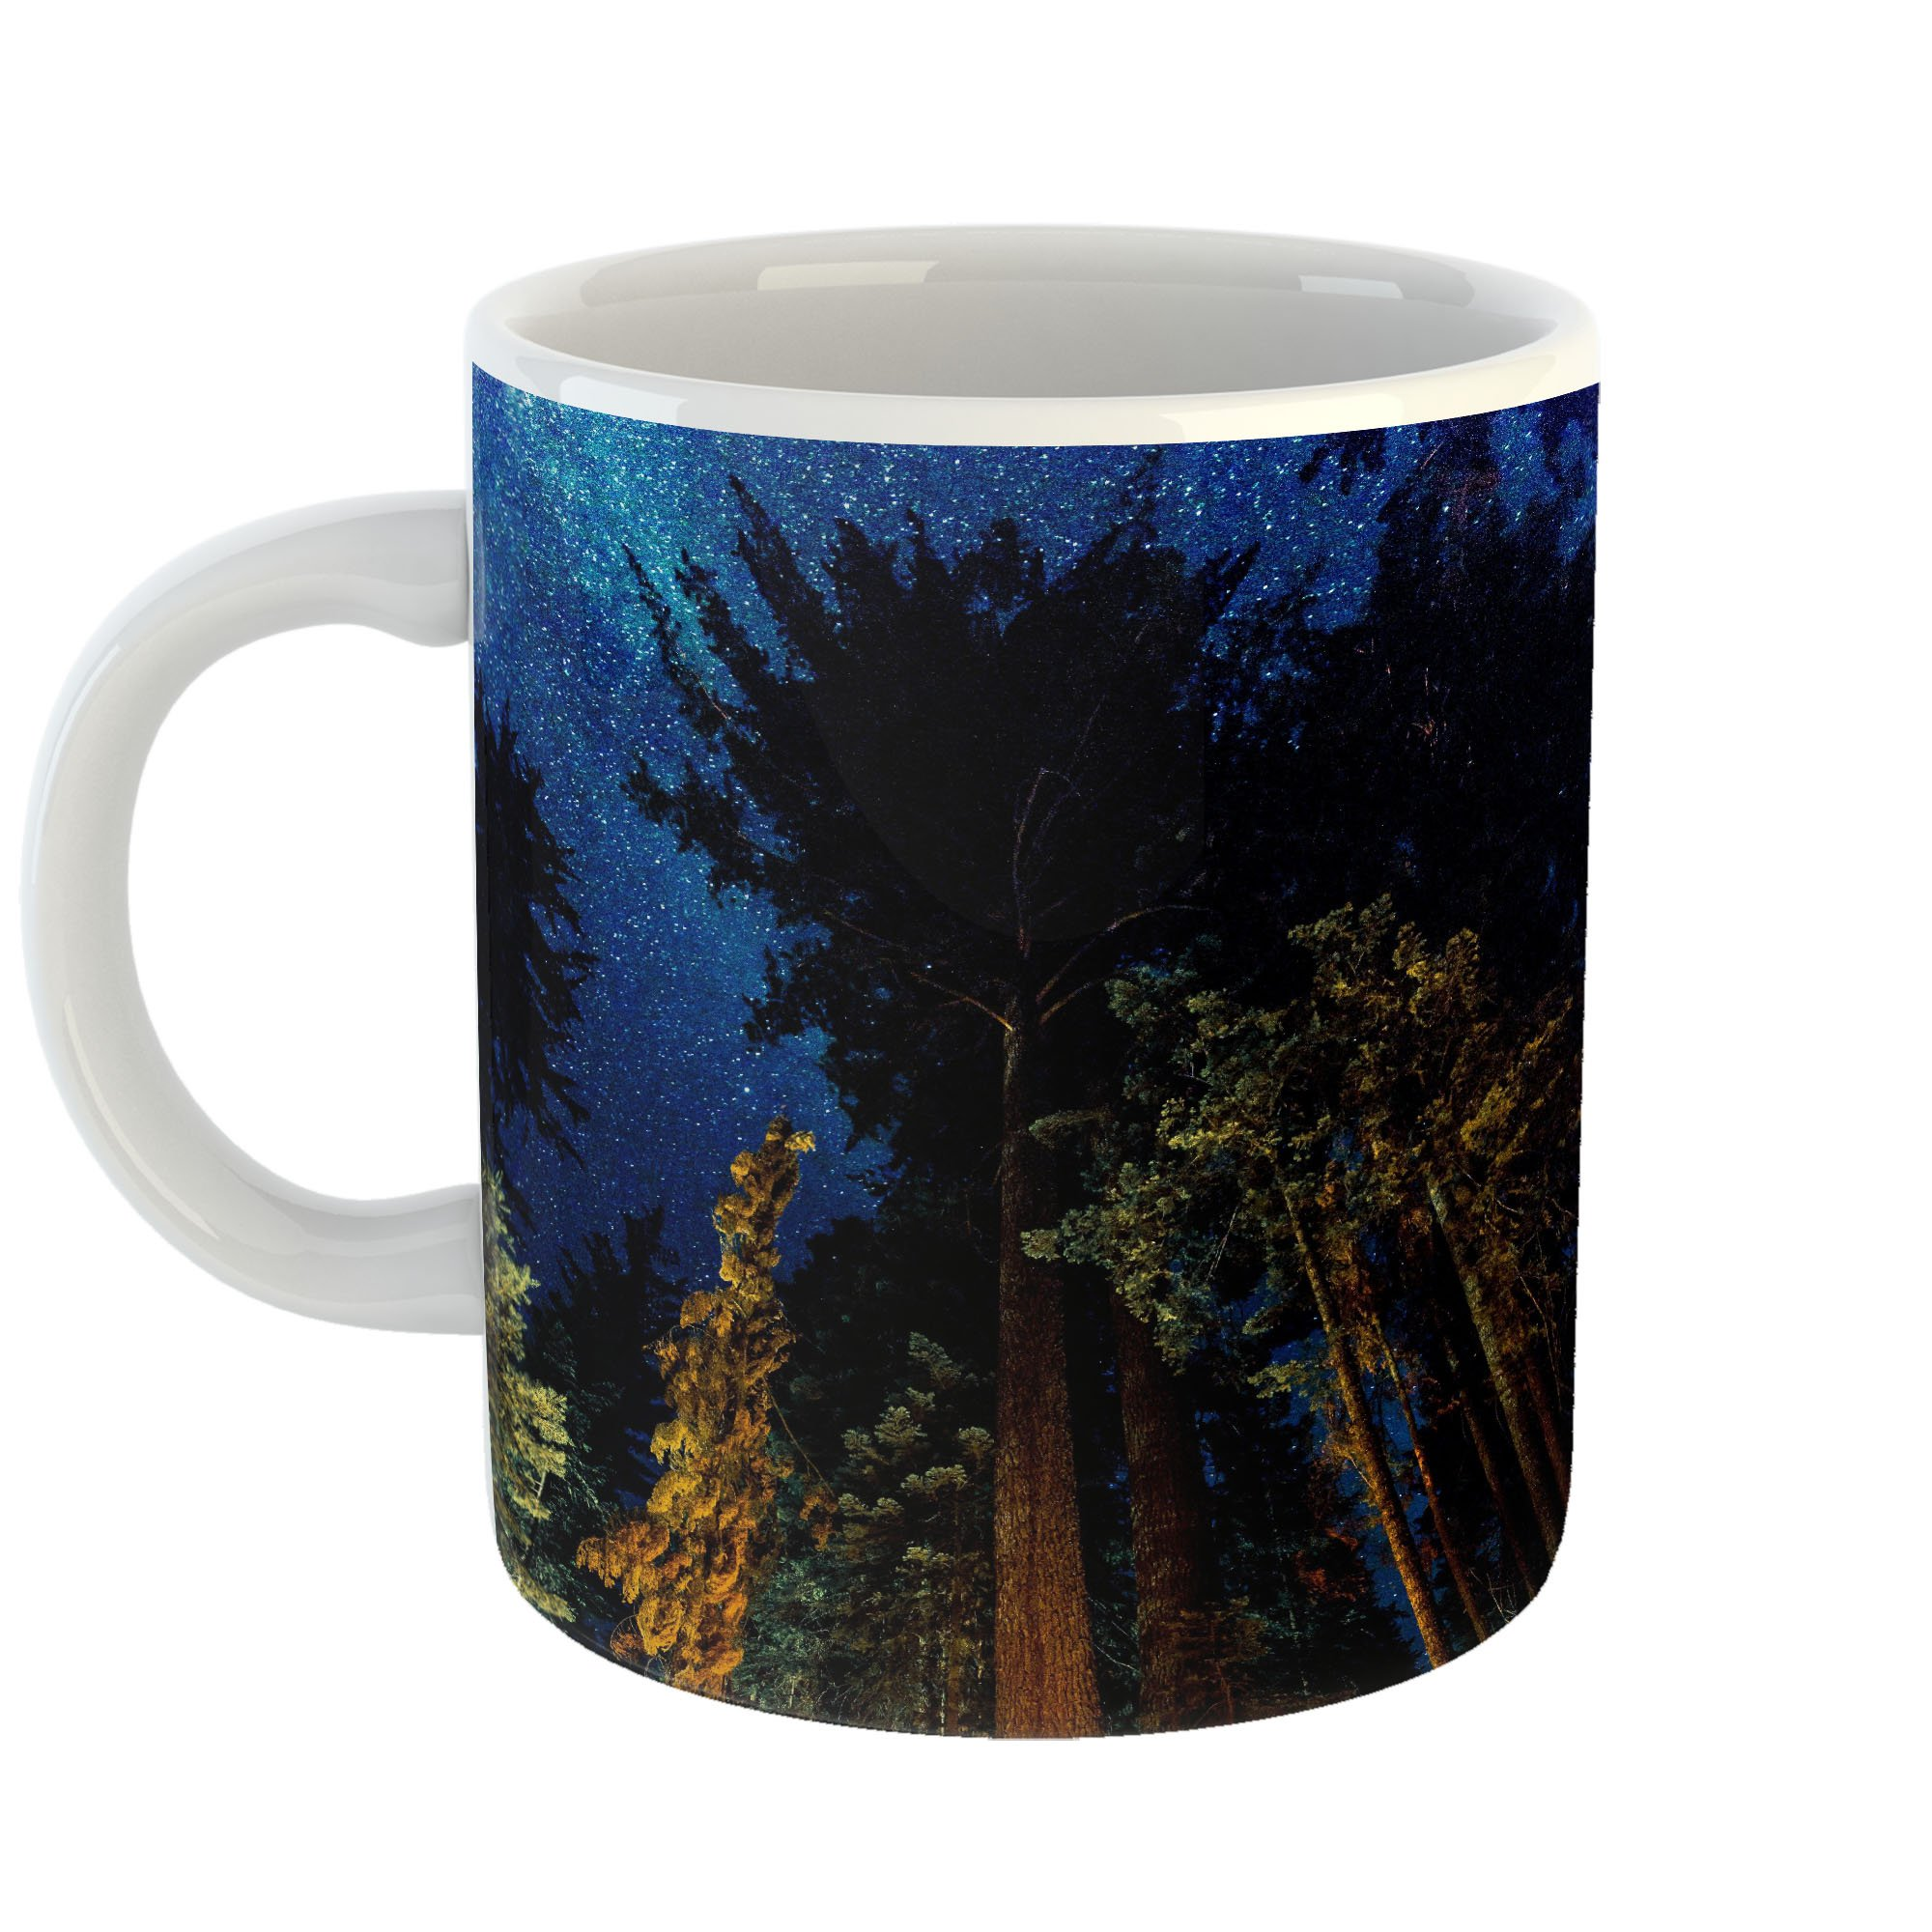 Westlake Art - Solar Road - 11oz Coffee Cup Mug - Modern Picture Photography Artwork Home Office Birthday Gift - 11 Ounce (9B58-D0D44)